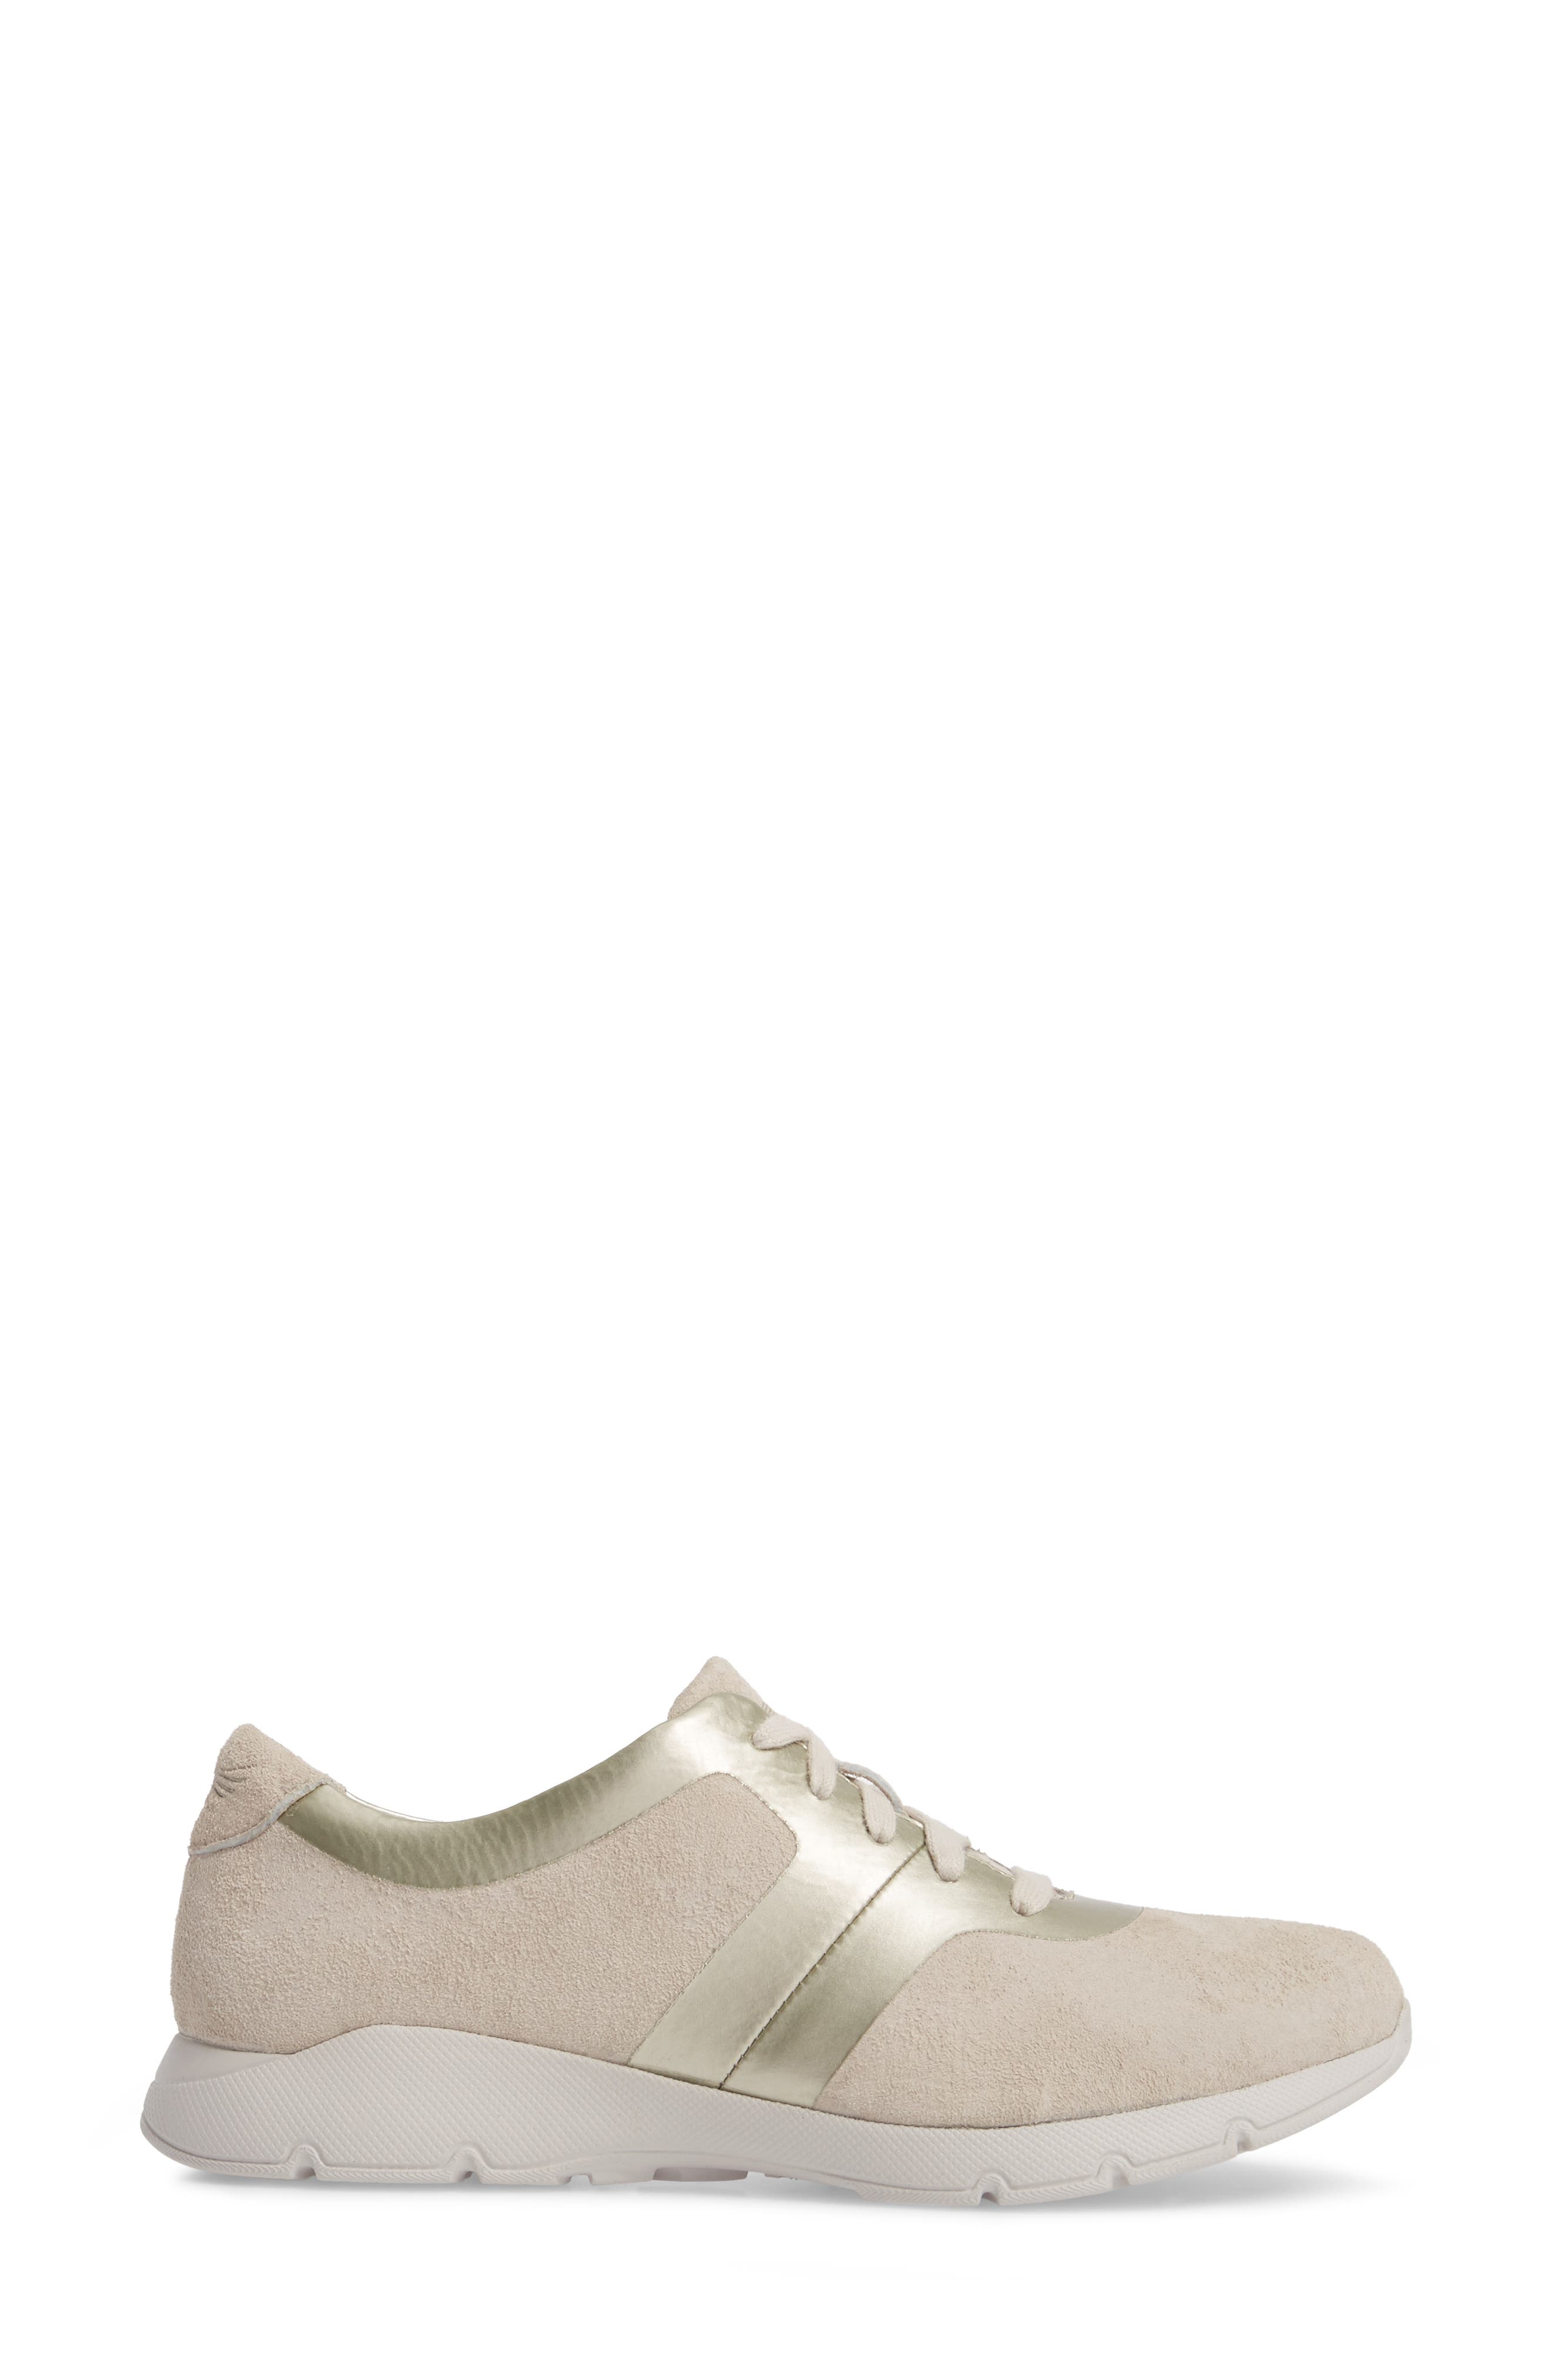 Andi Sneaker,                             Alternate thumbnail 3, color,                             Ivory Leather